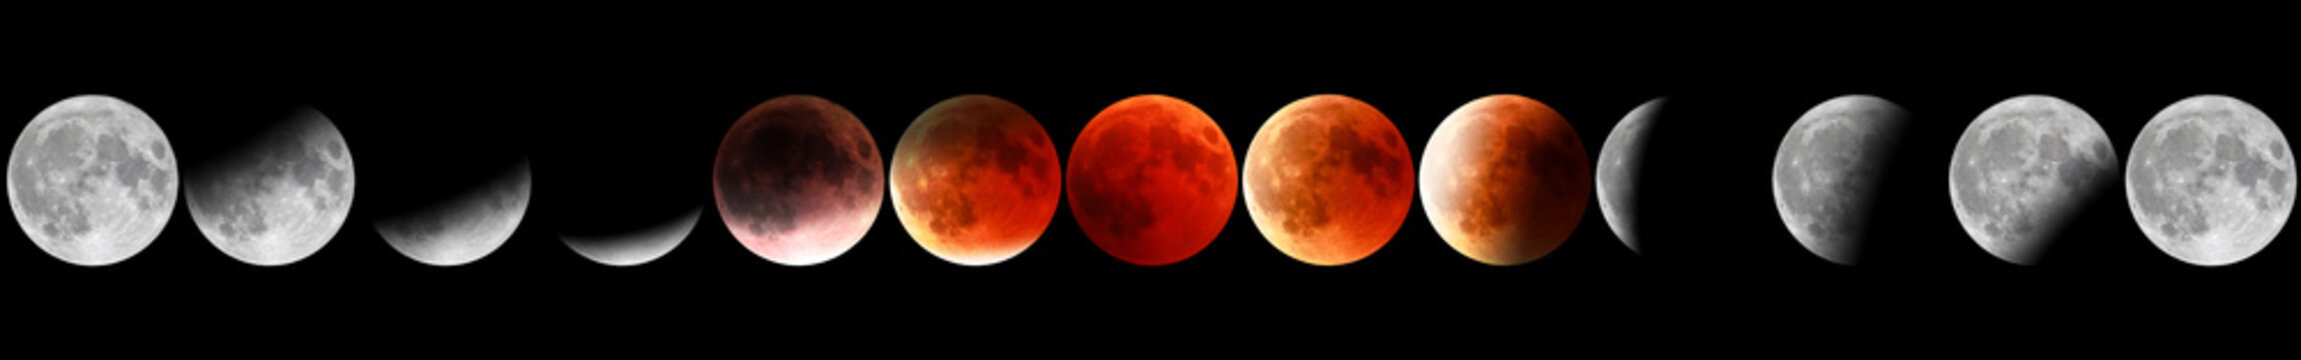 Banner astronomical background. Full red moon phases by night. The total phases of the lunar eclipse. Wide panorama.